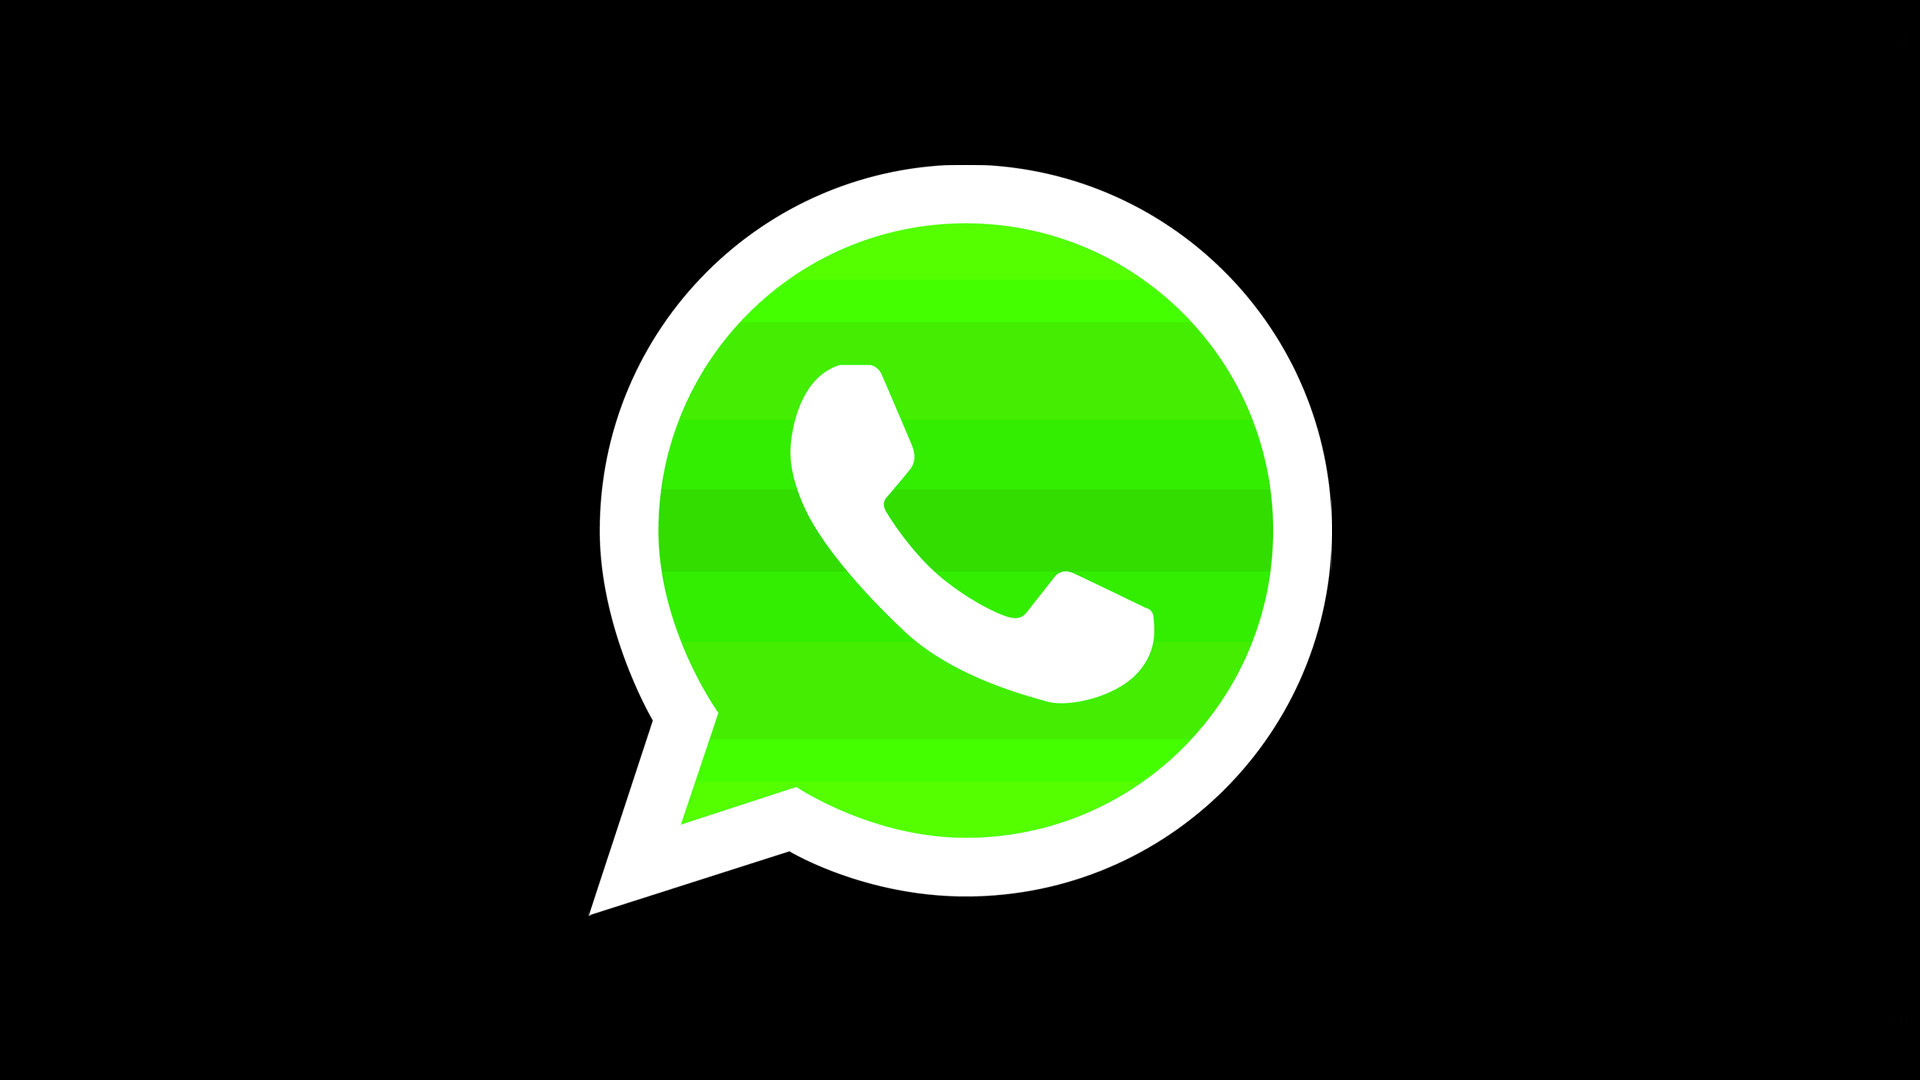 whatsapp apk андроид